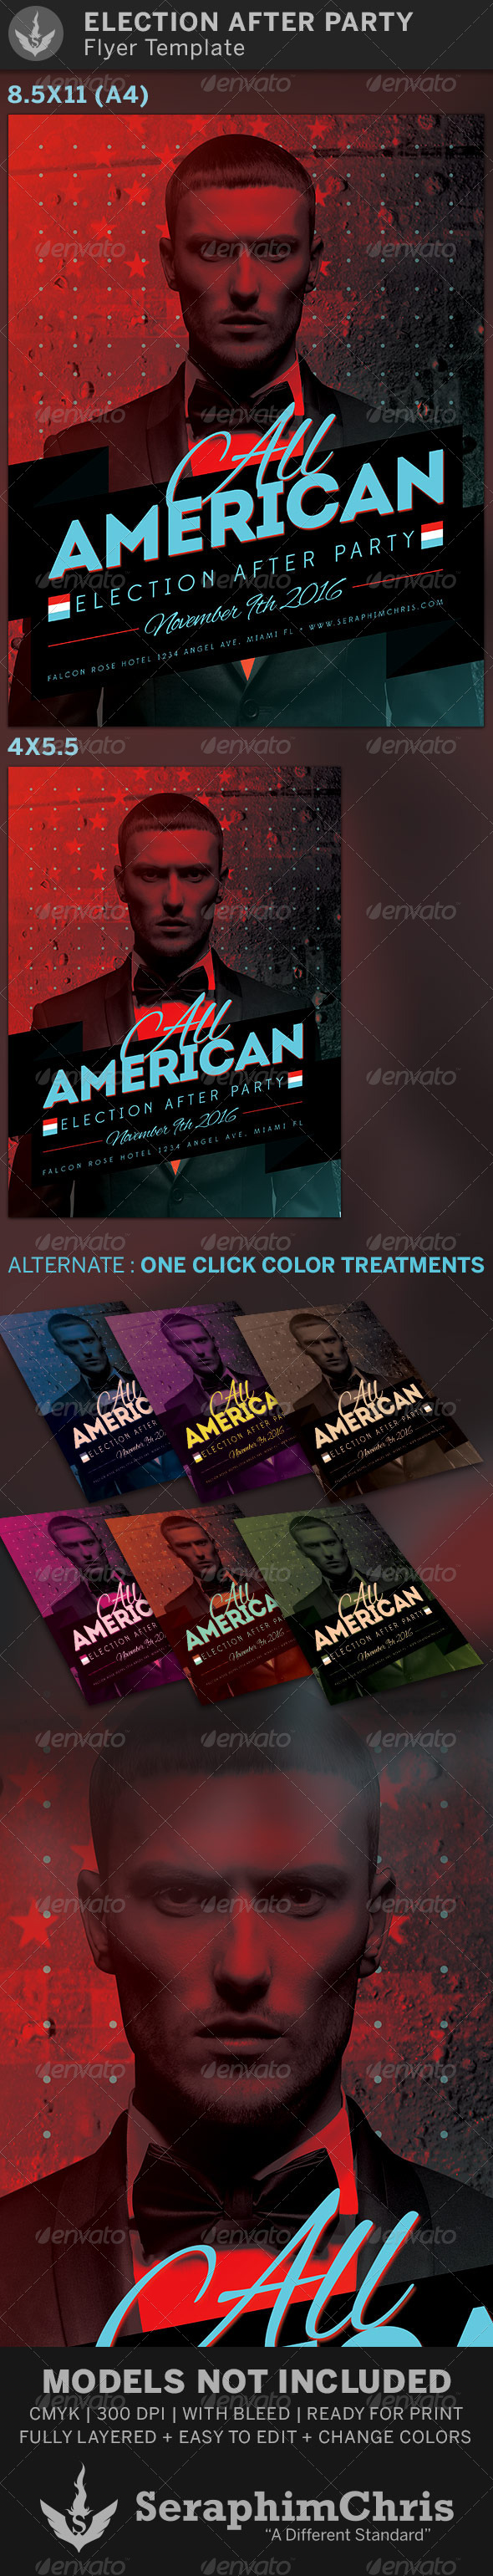 All American Election After Party Flyer Template - Events Flyers